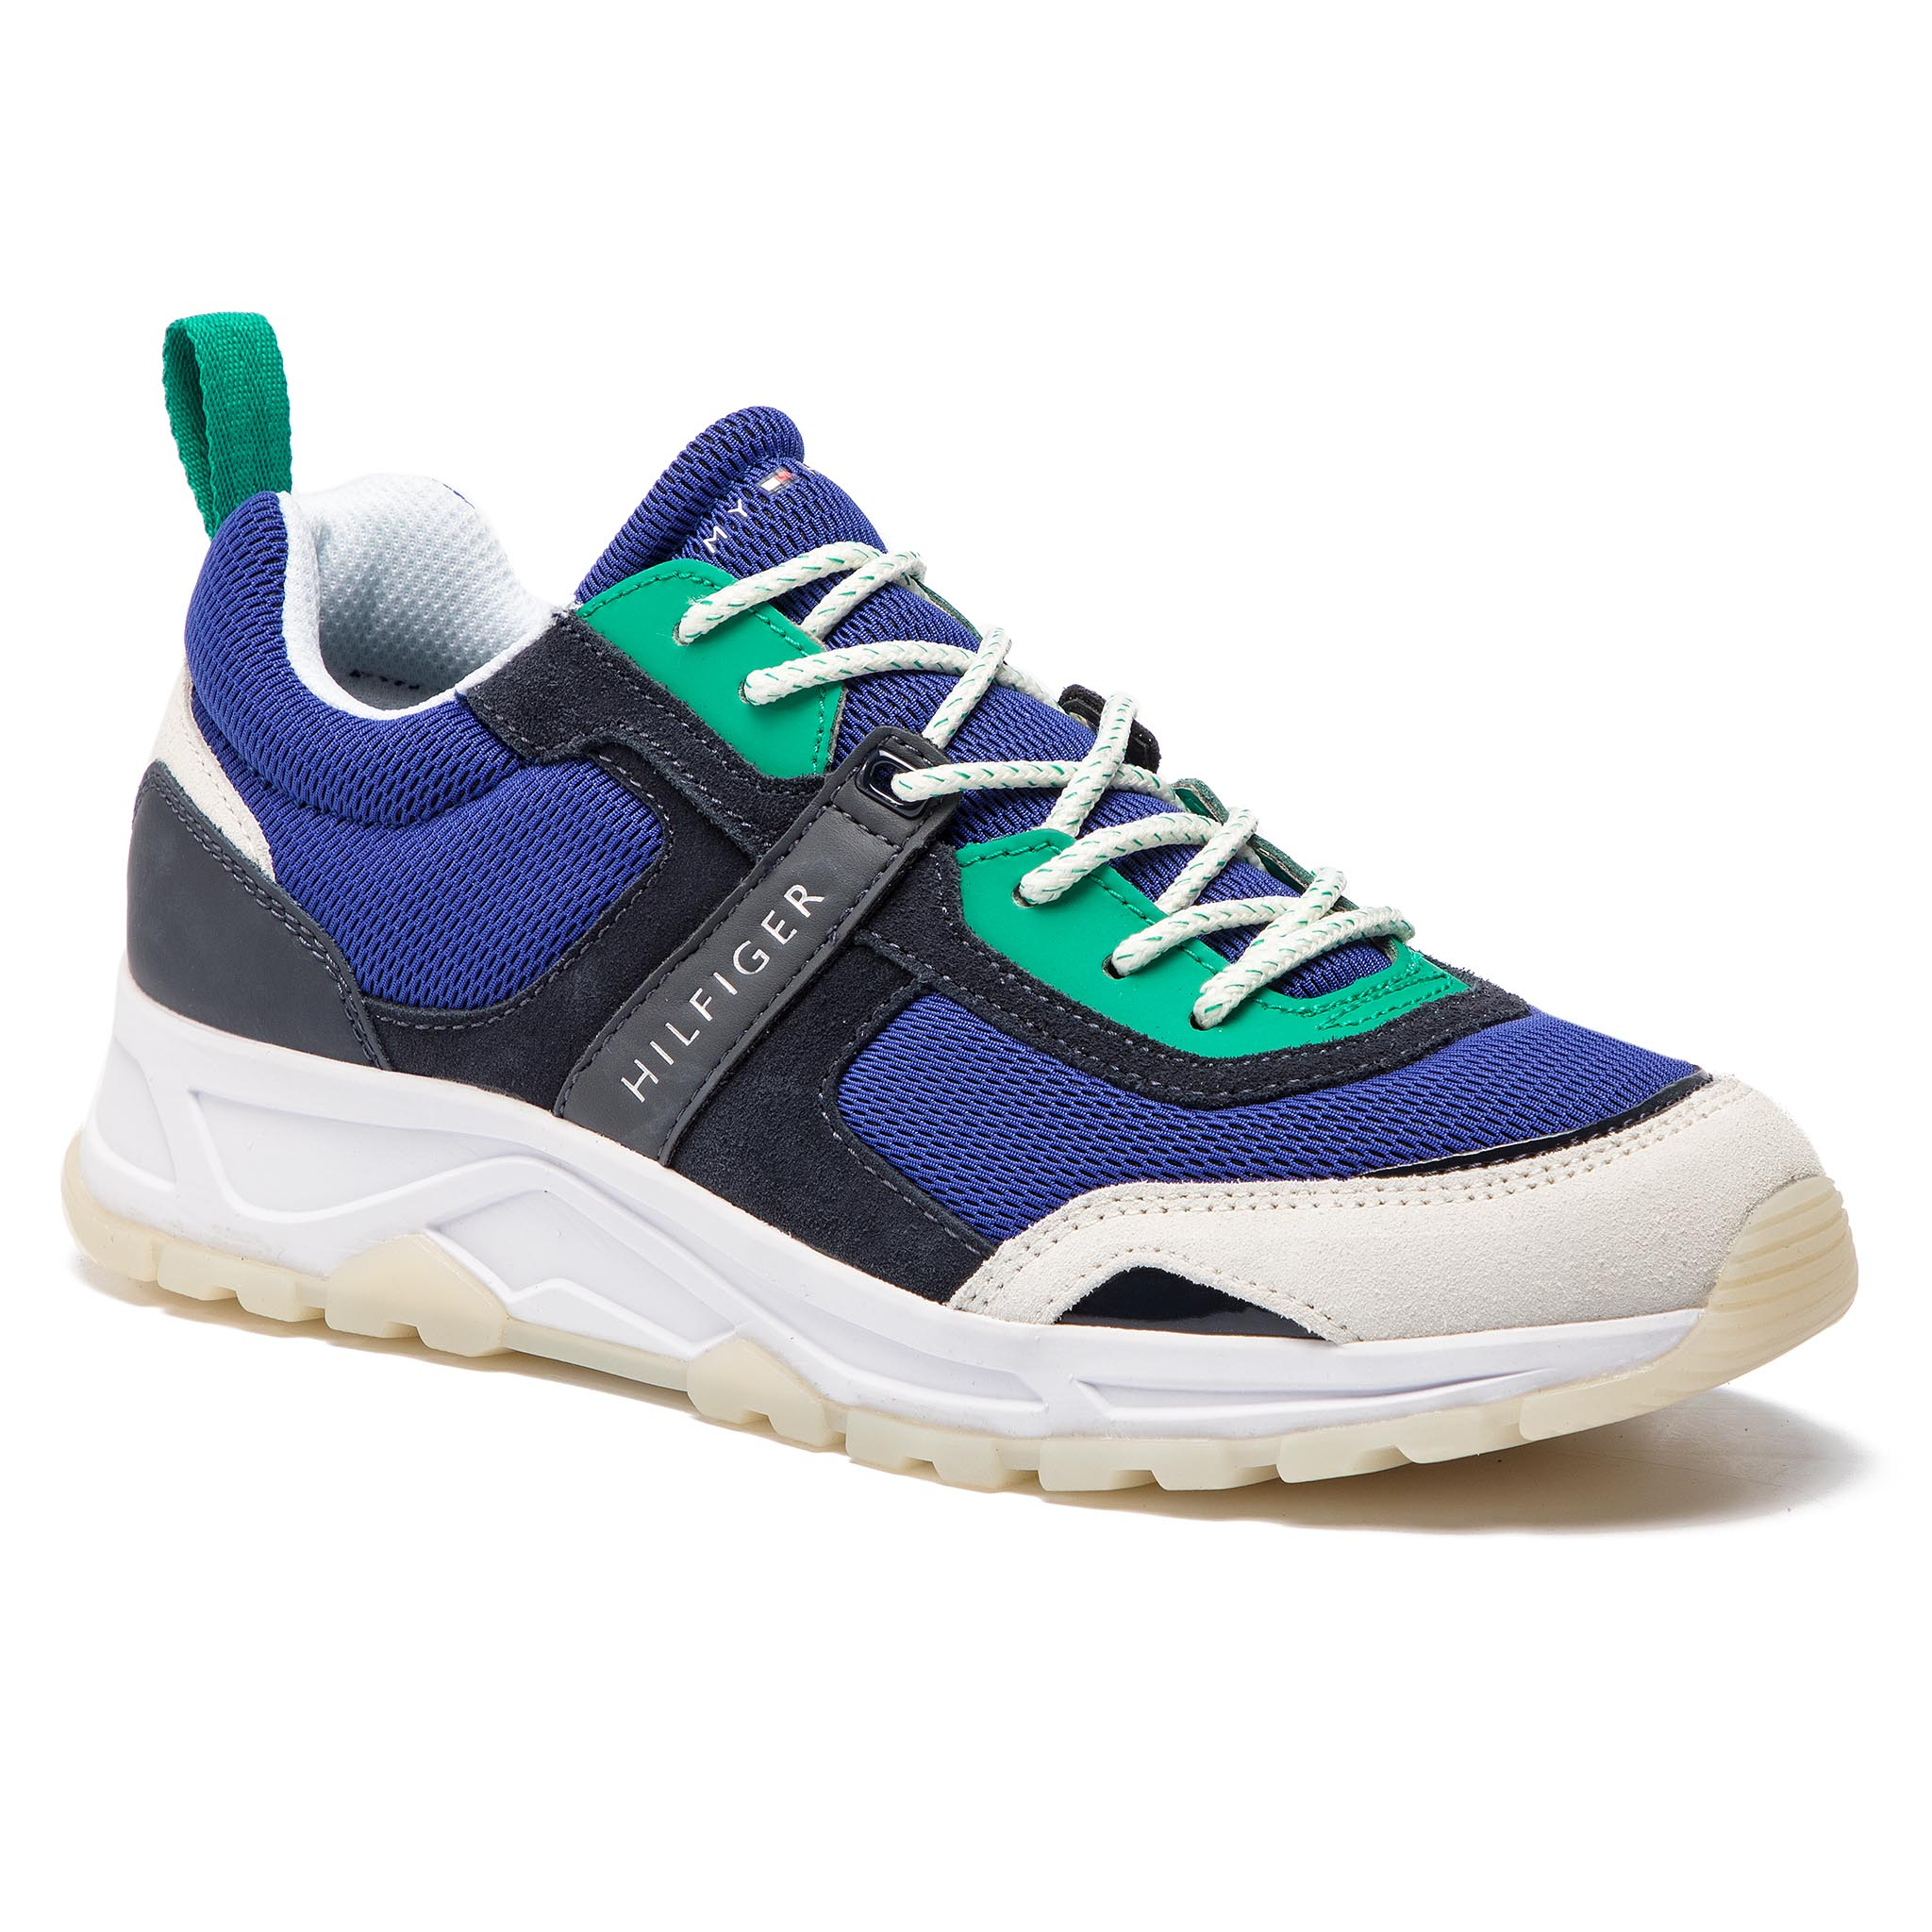 Sneakers TOMMY HILFIGER - Fashion Mix Sneaker FM0FM02027 Midnight 403